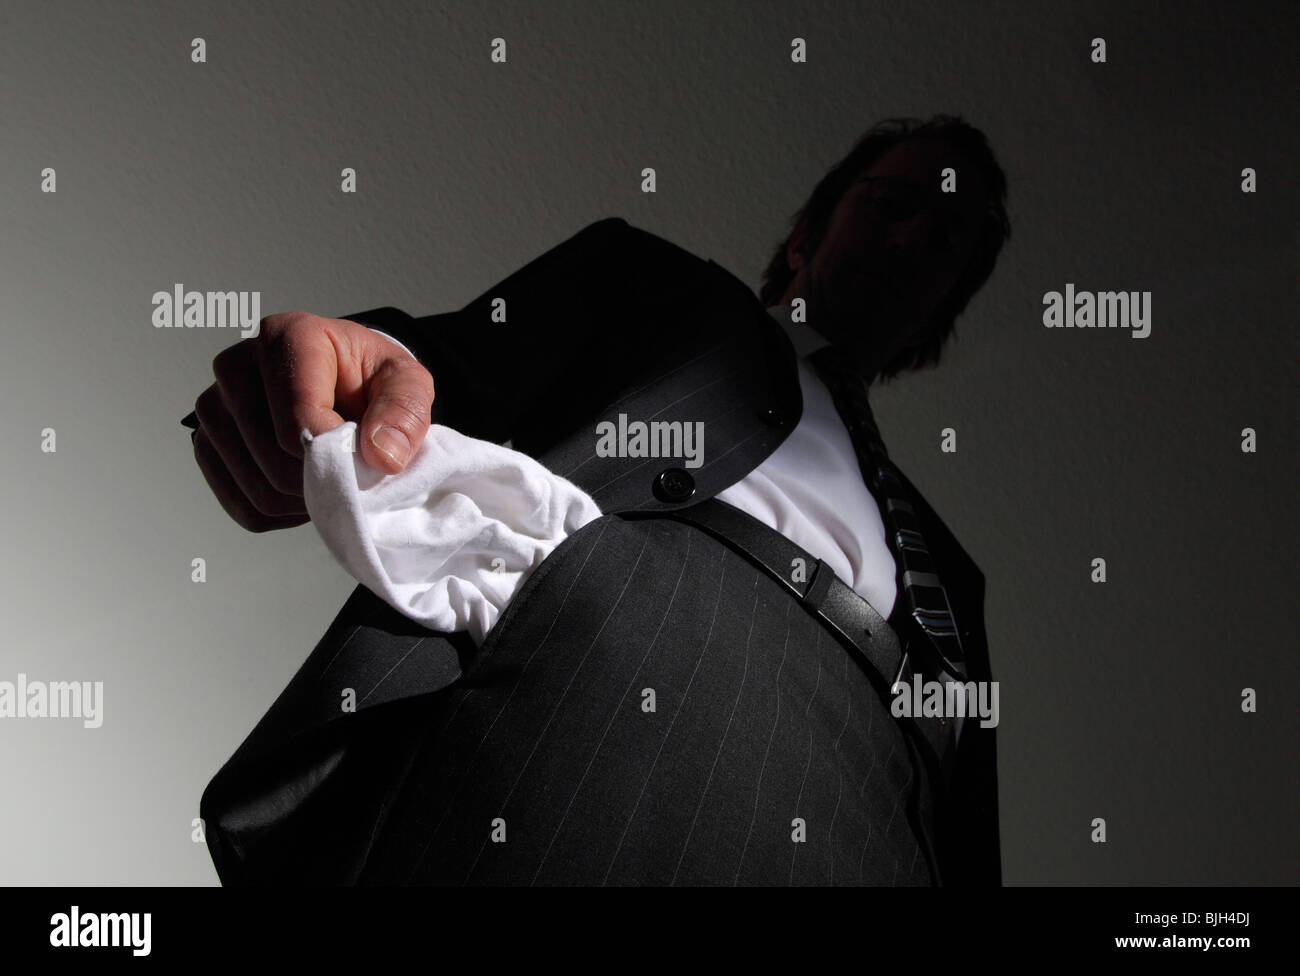 Man in a suit with empty pockets. Symbol: insolvency, national bankruptcy, etc - Stock Image